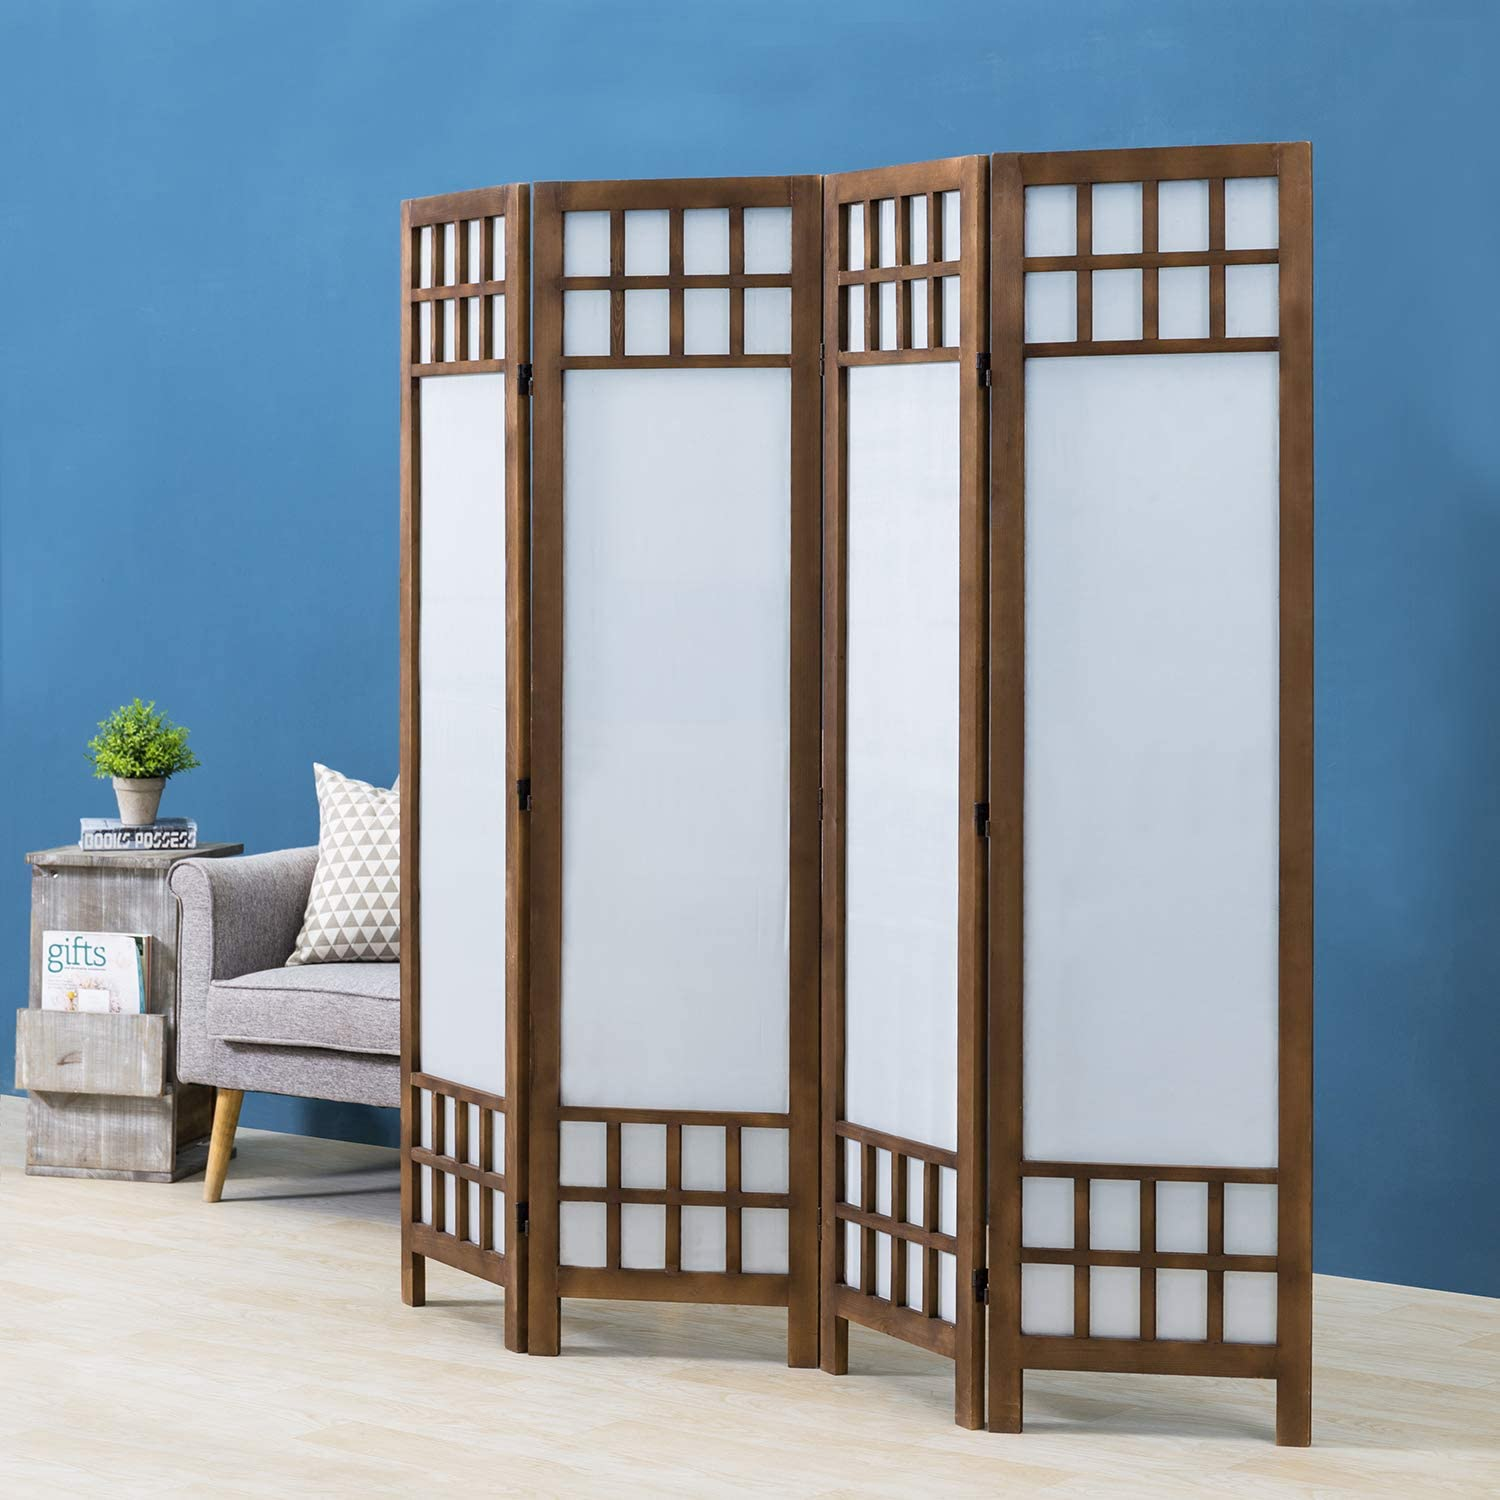 MyGift 4-Panel Asian Screen Door Pane Style Fabric /& Wood 6ft Room Divider